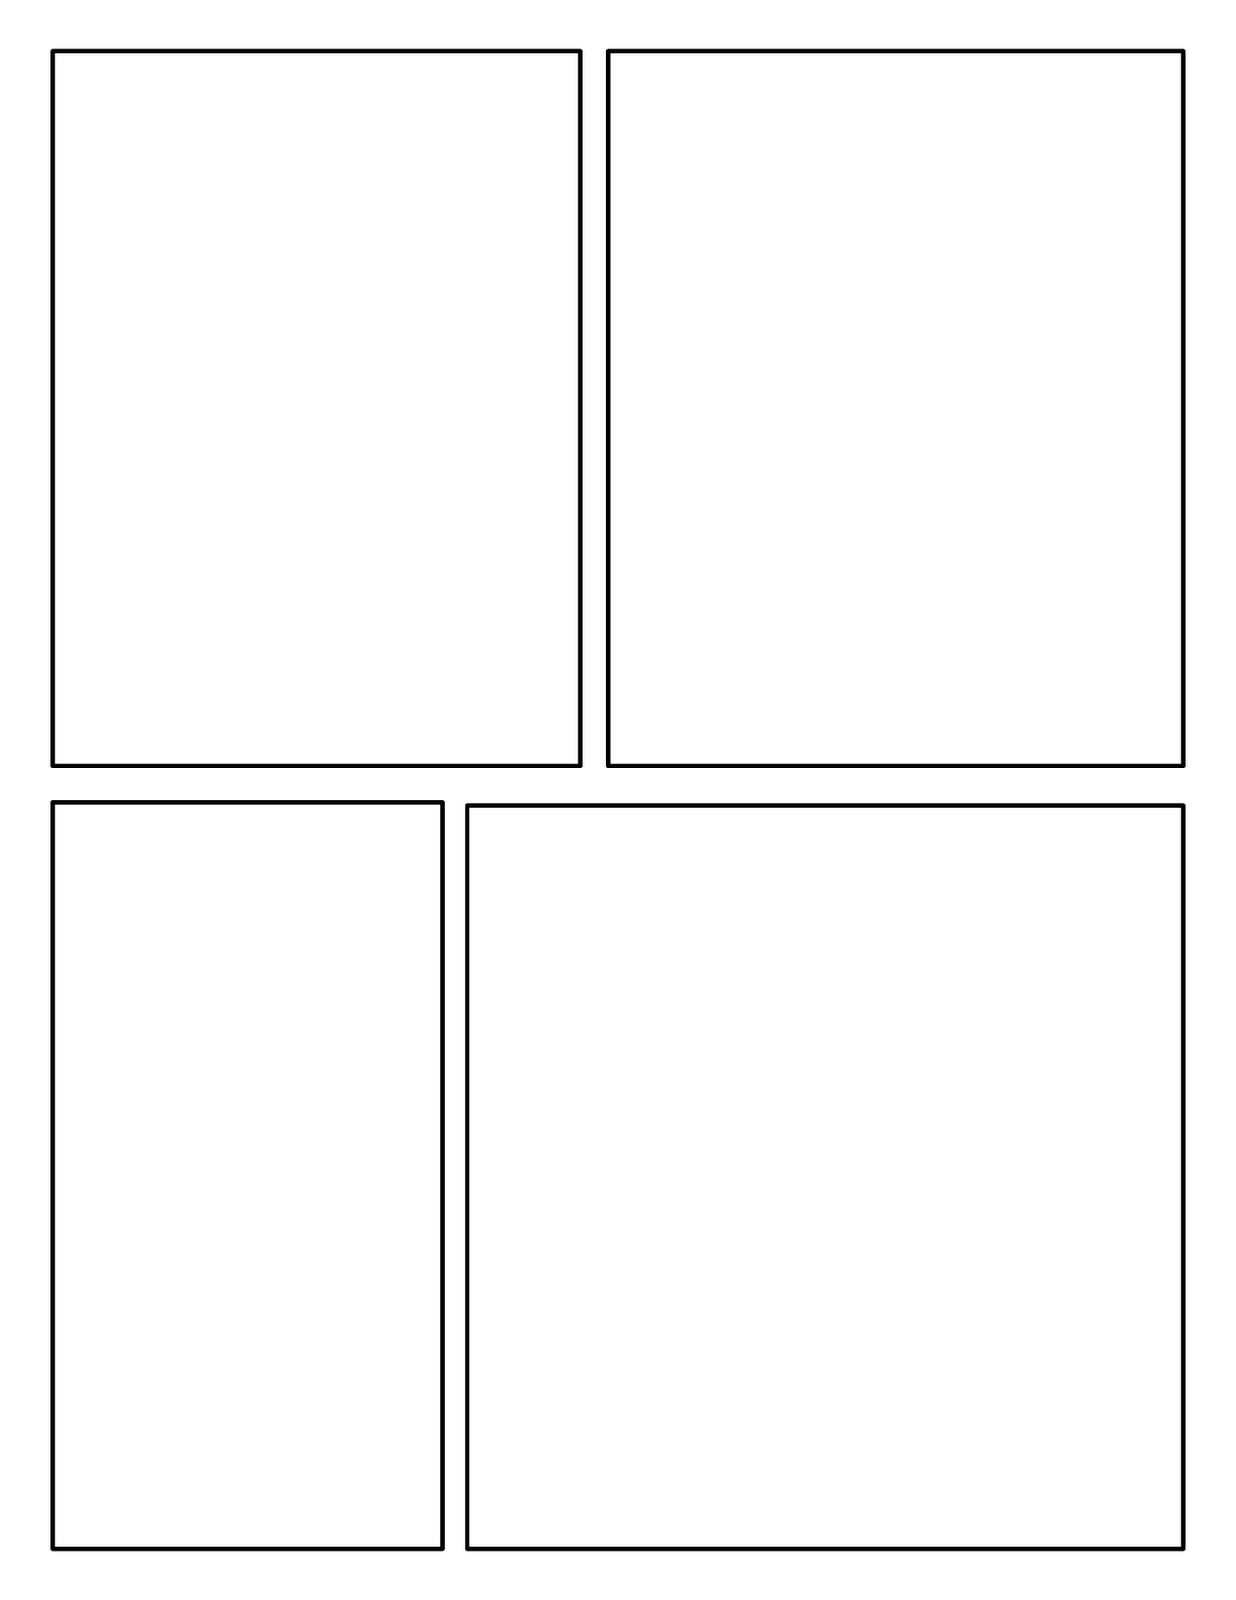 Mrs orman 39 s classroom offering choices for your readers for Four panel comic strip template